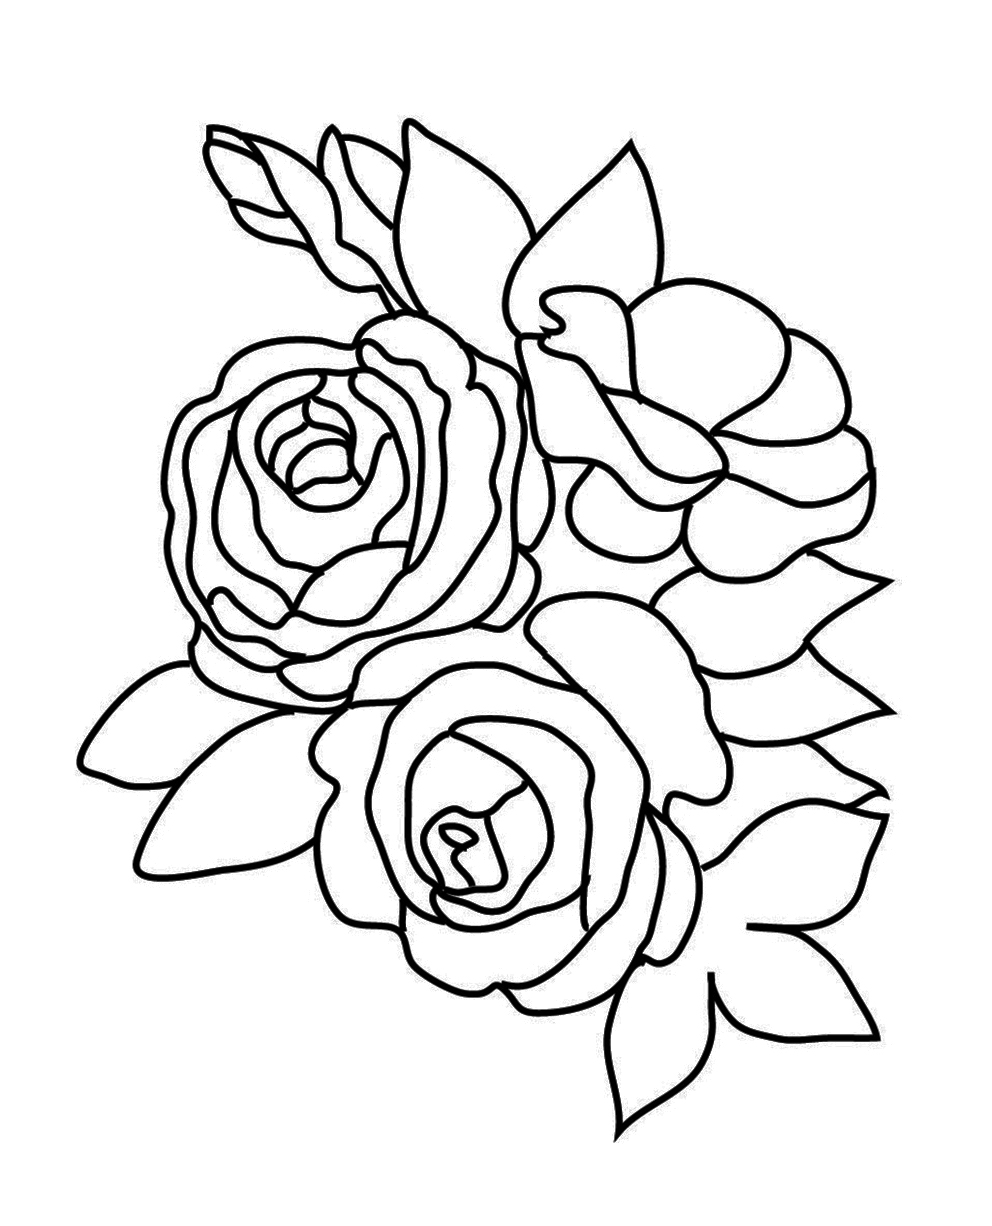 picture of a rose to color rose leaf drawing at getdrawings free download color of to picture a rose